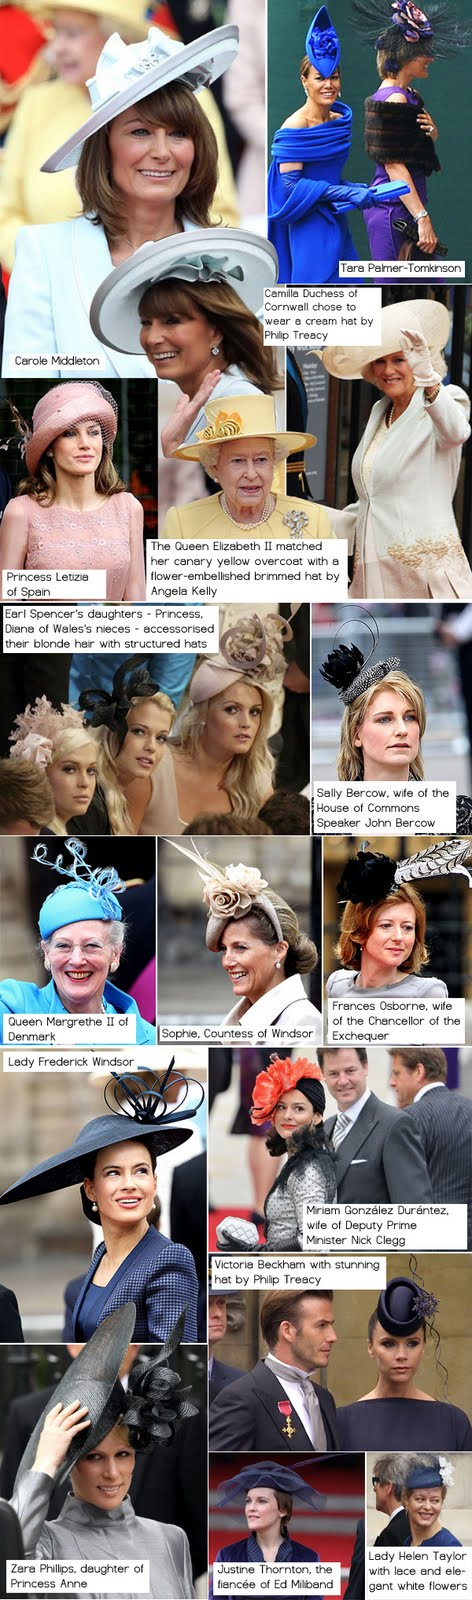 Awesome Hats Parade at Royal Wedding